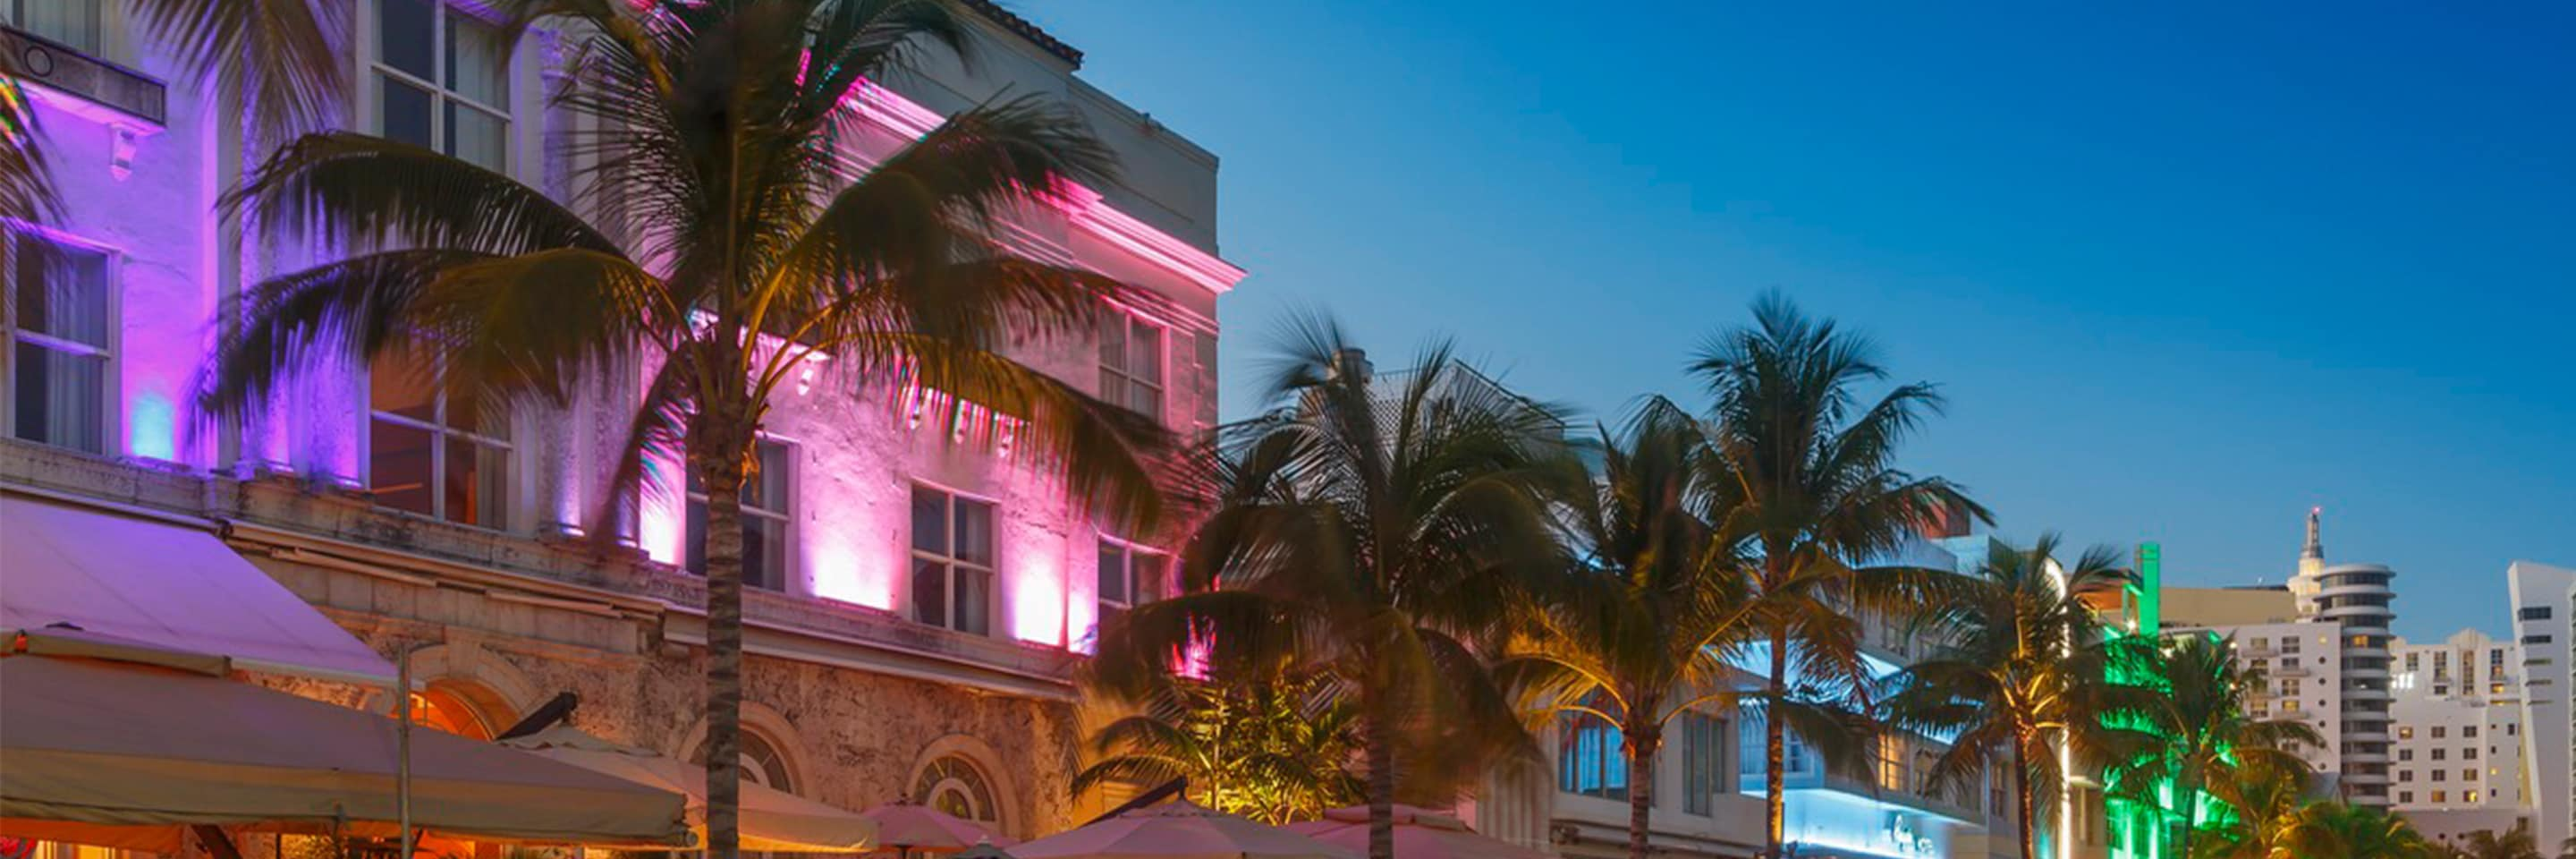 Family Hotels In Miami South Beach